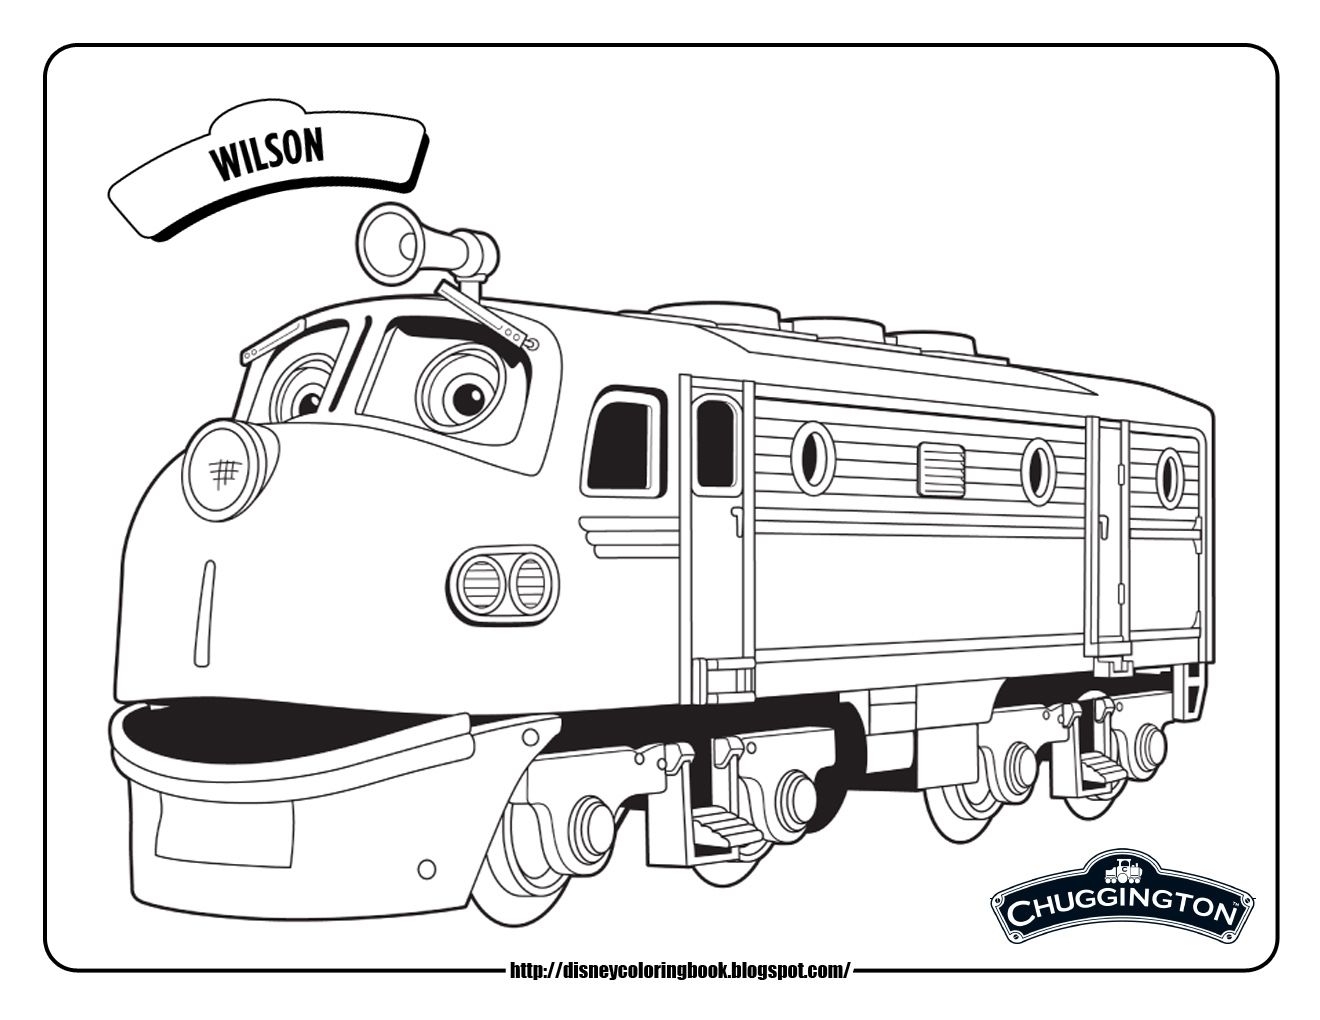 Chuggington Coloring Pages Coloring Pages Coloring Pages For Kids